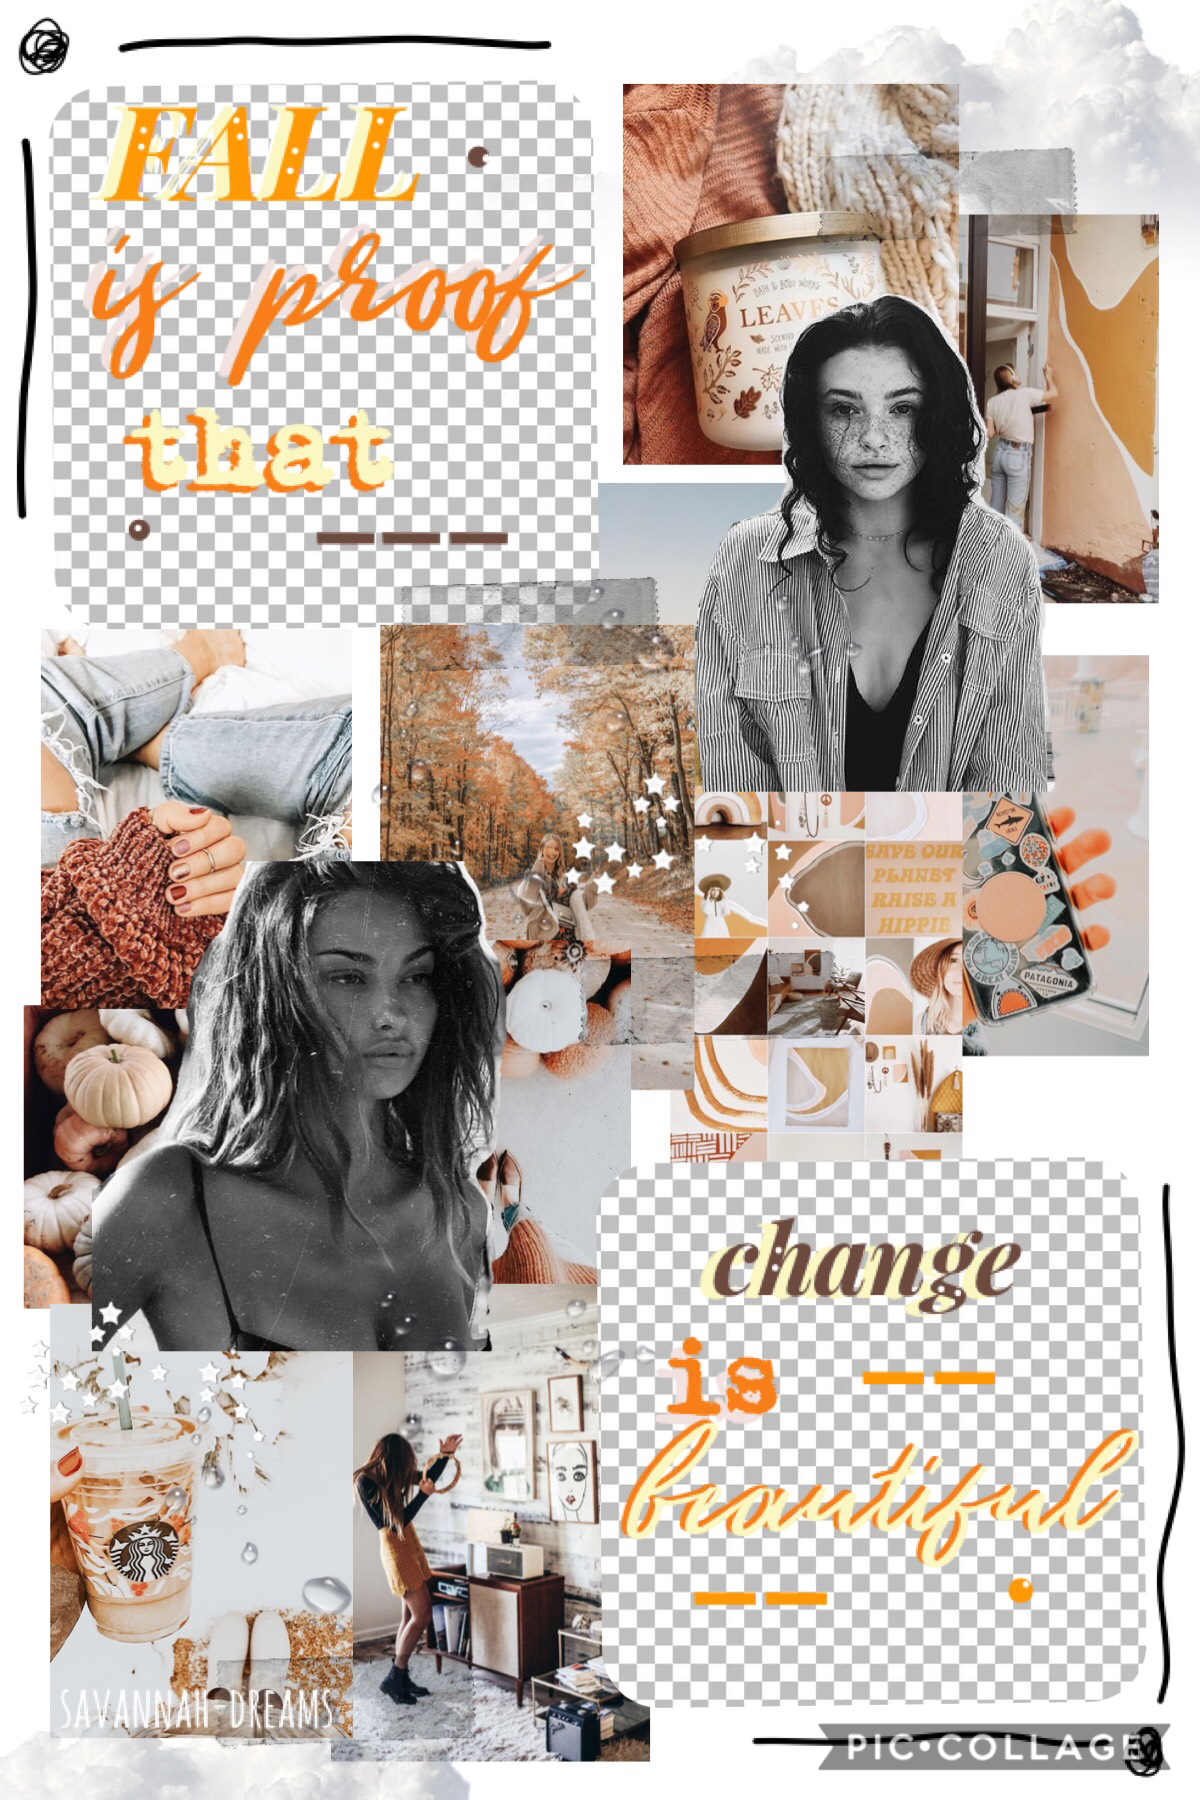 eee it's spooky szn 🍊💨 oop not here in australia but oh well, i'll celebrate anyhow, lol 😂 tysm for 1.4 K 👏🏼 whoop whoop 🌿 entry to a fall contest > love the bg but I'm not so sure 'bout the text... 🍡